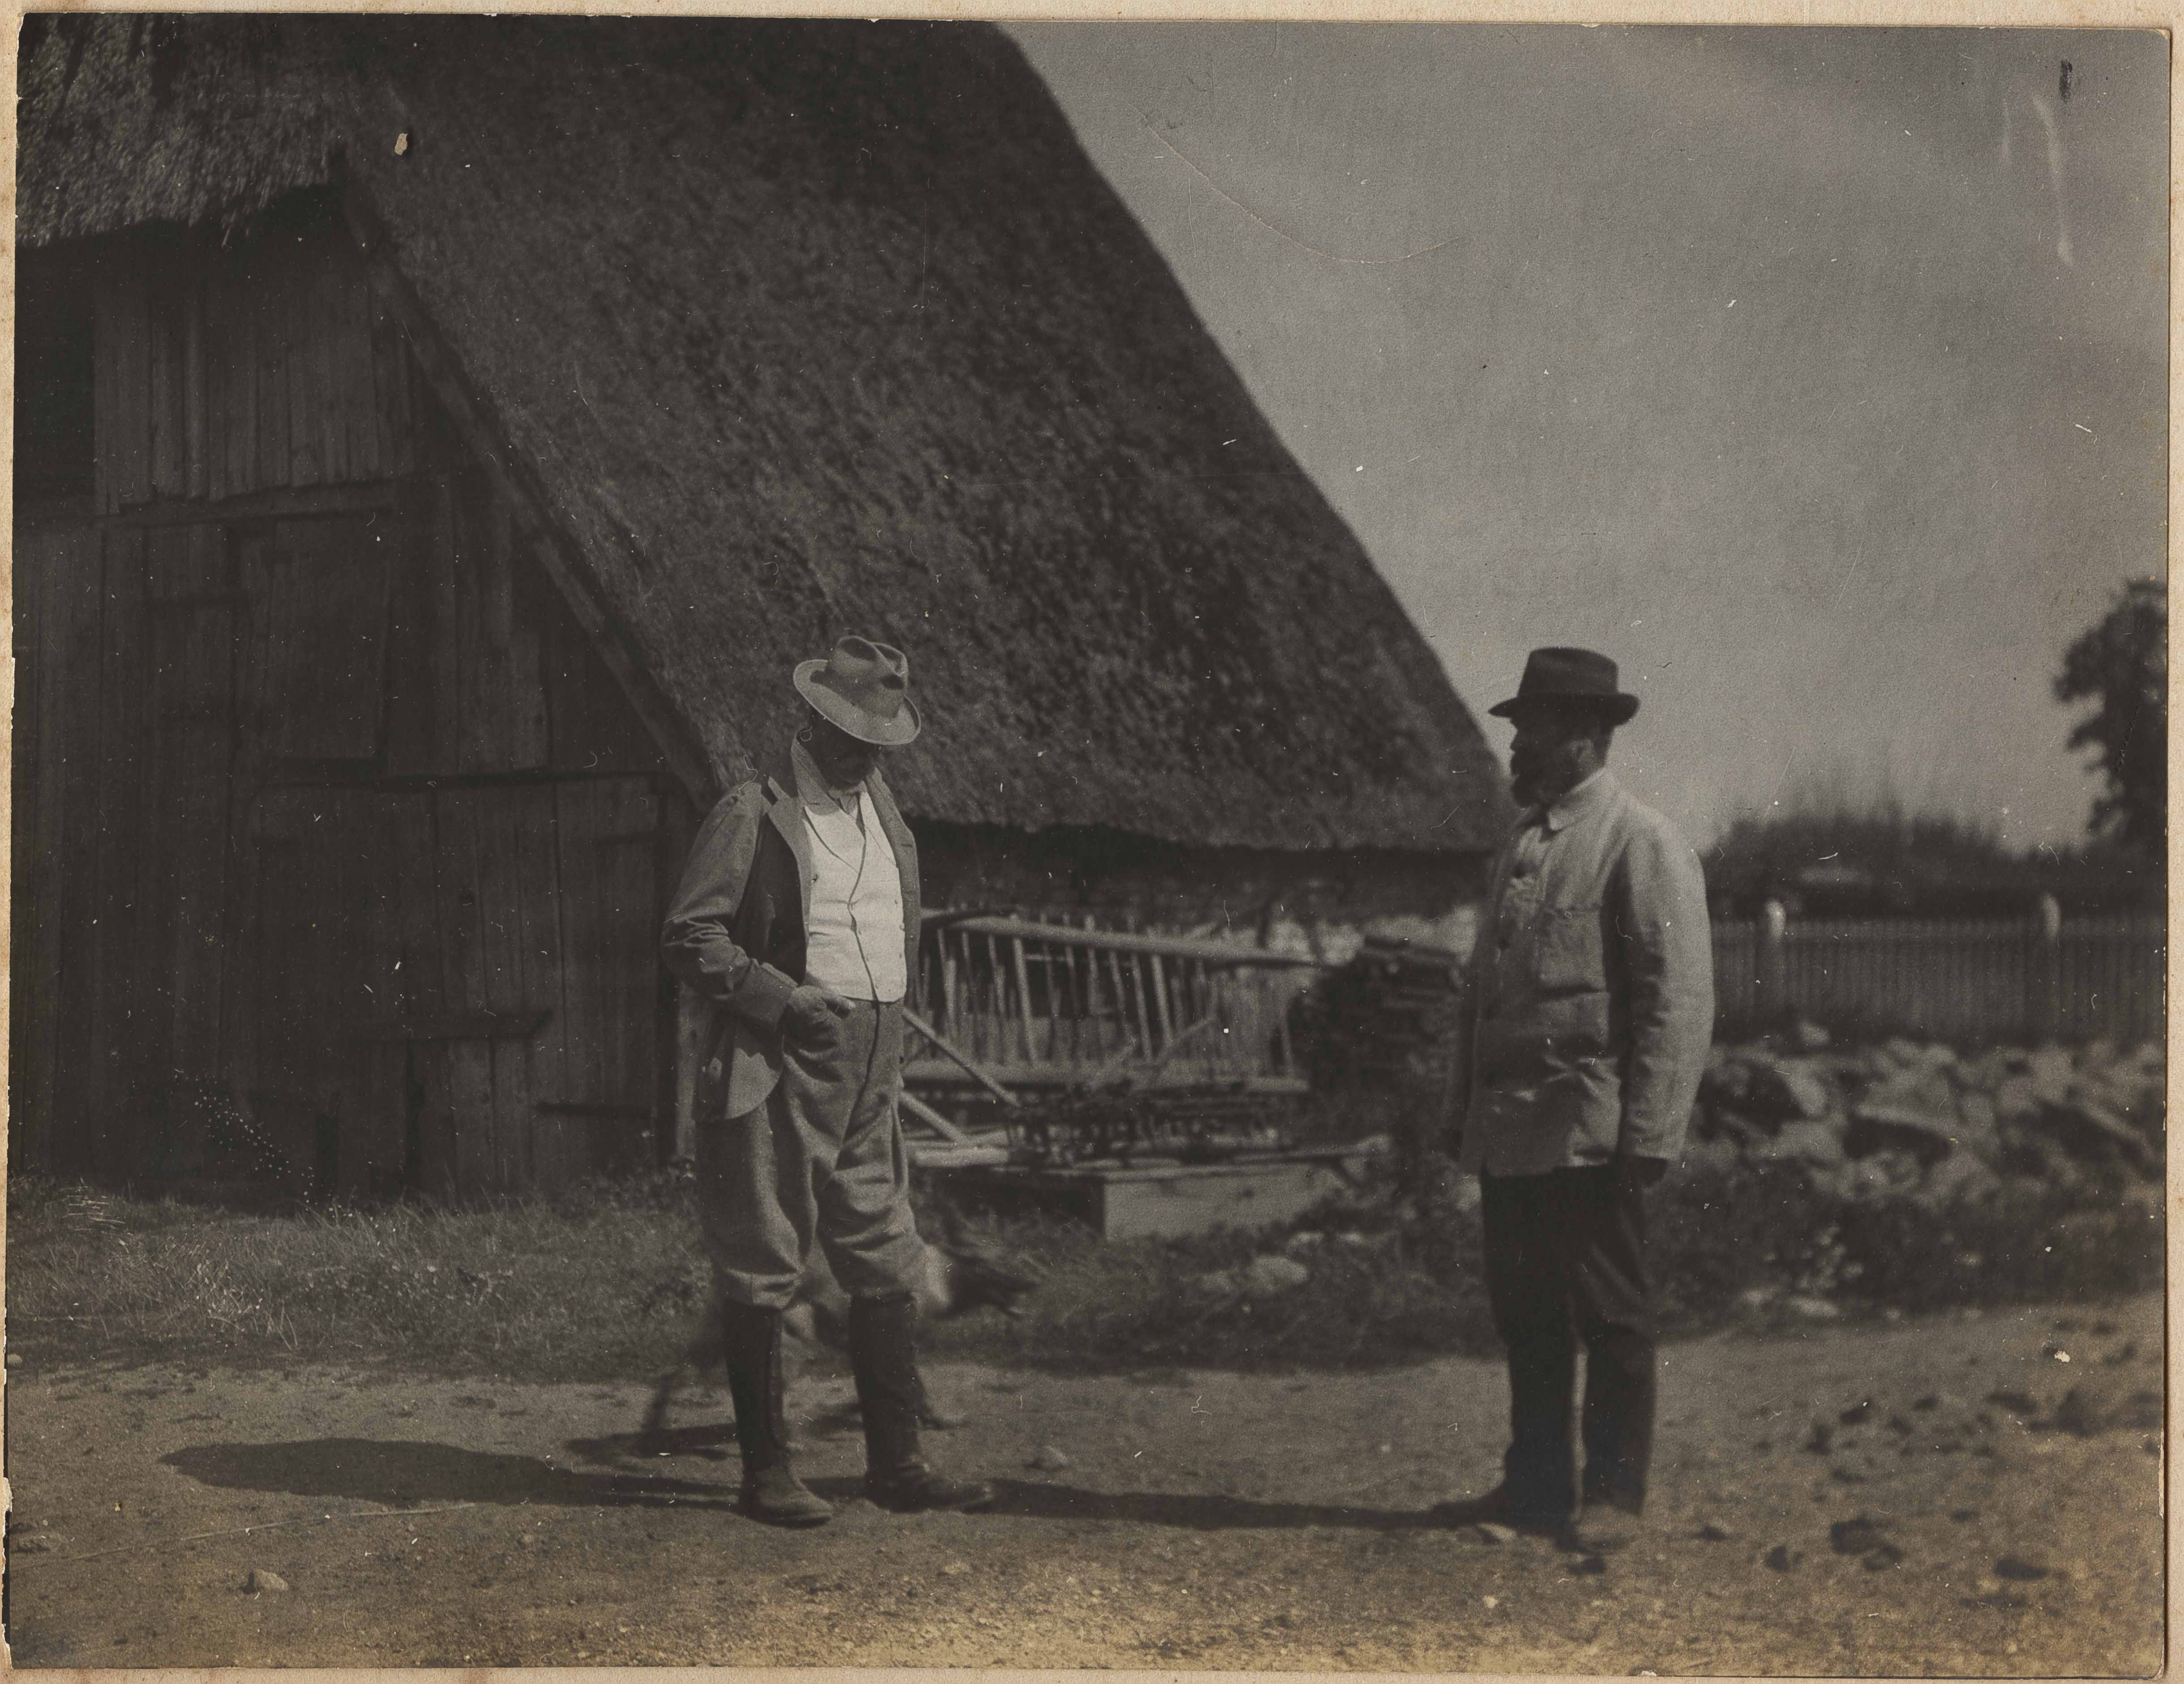 Two men in front of hay wagon in Altona